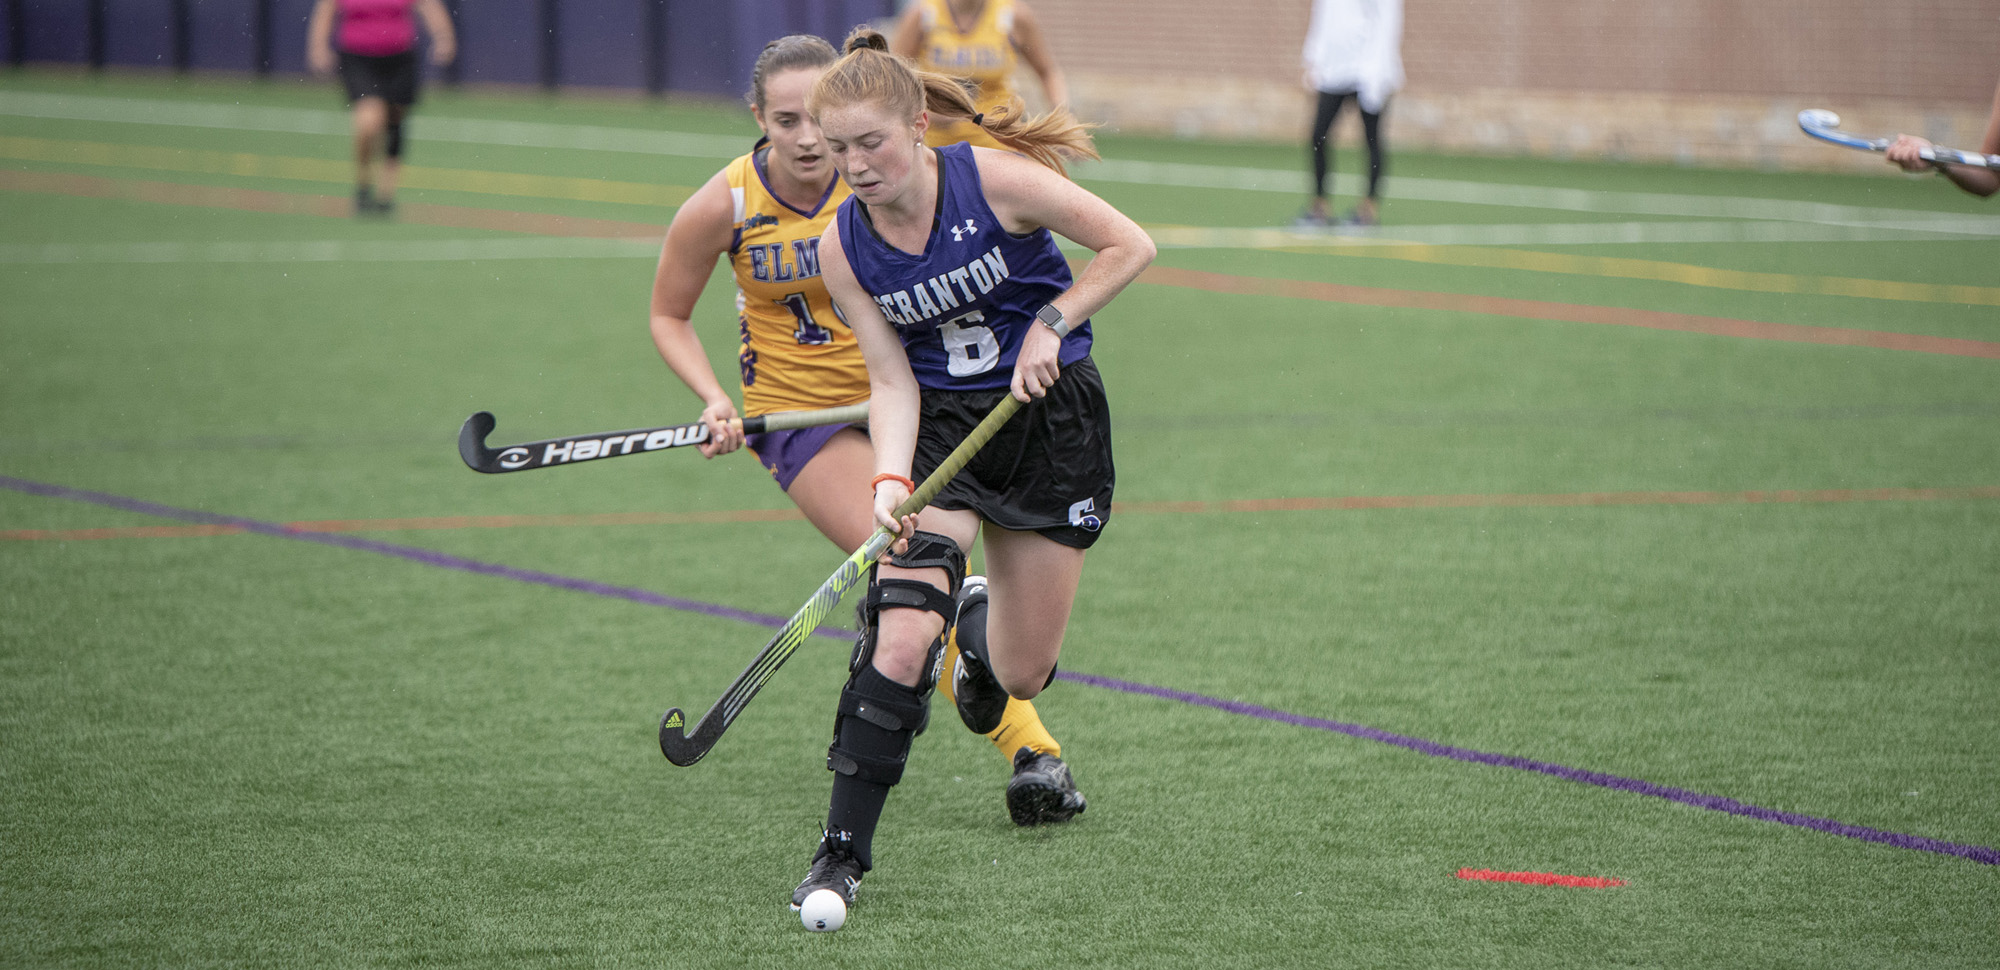 Allie Benadon opened the scoring for Scranton on Wednesday in the Royals' 5-0 win at Drew.